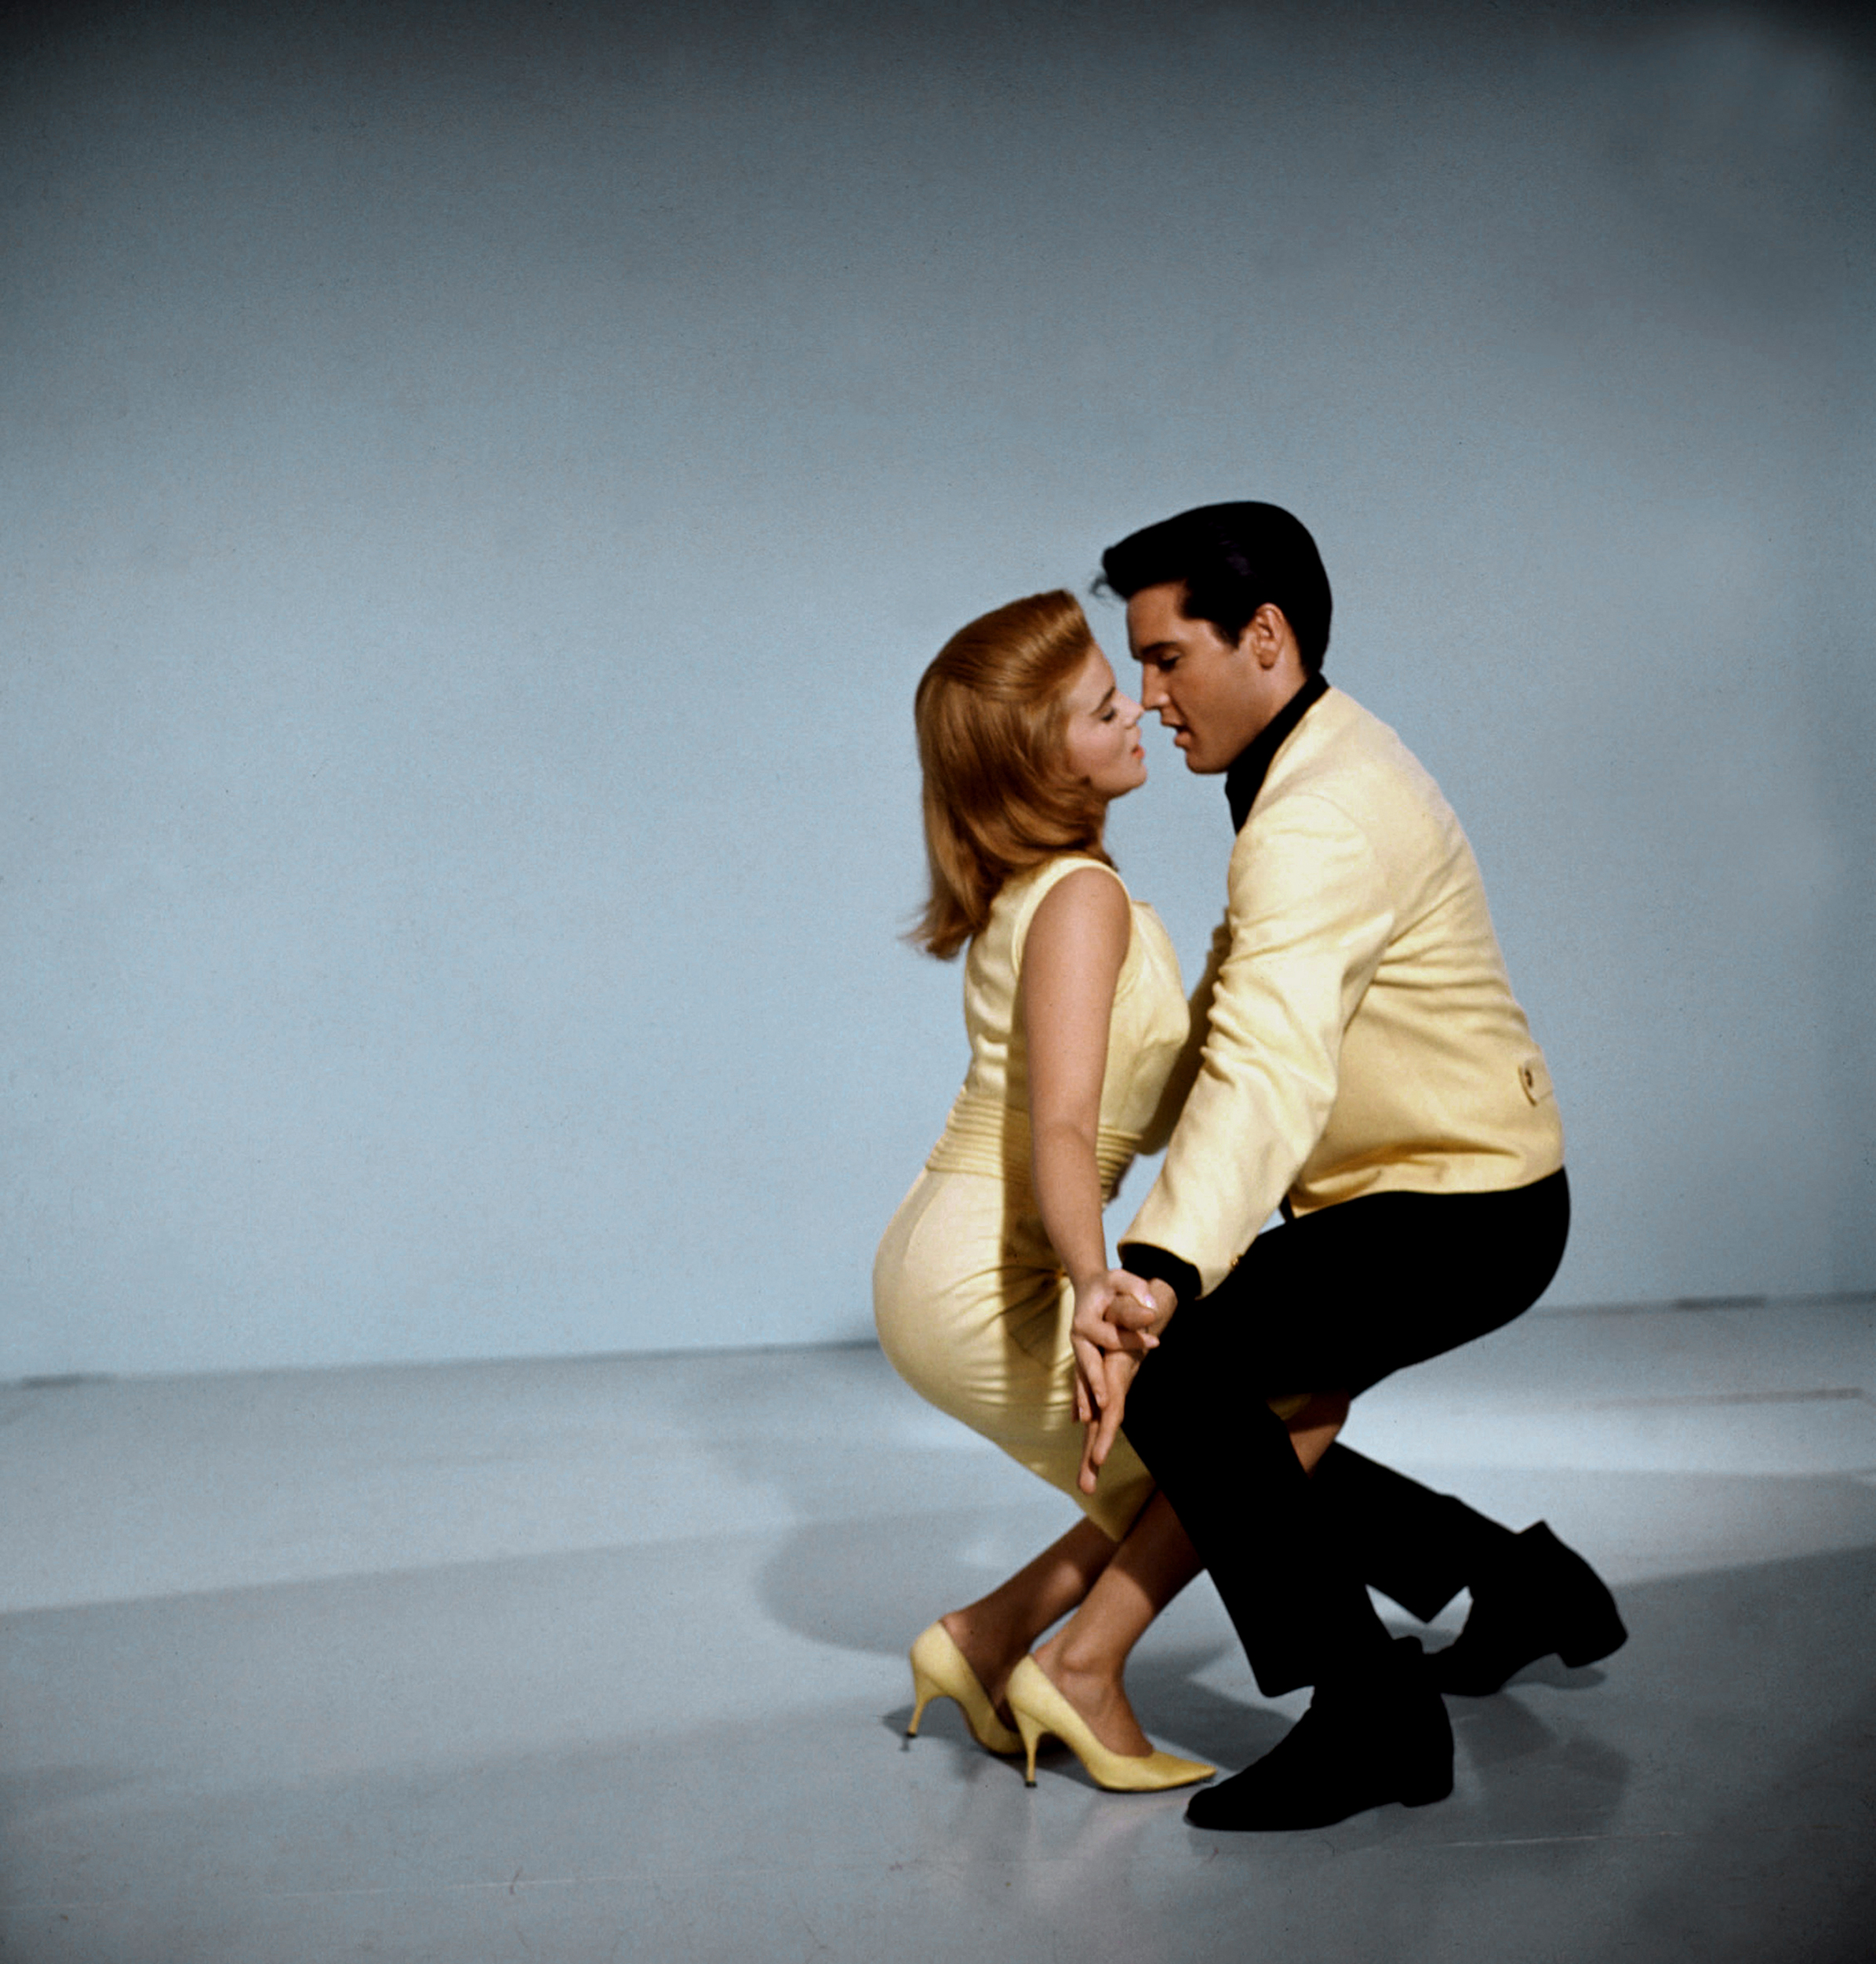 Swedish-American actress, singer and dancer Ann-Margret and Elvis promoting the movie Viva Las Vegas, 1964.